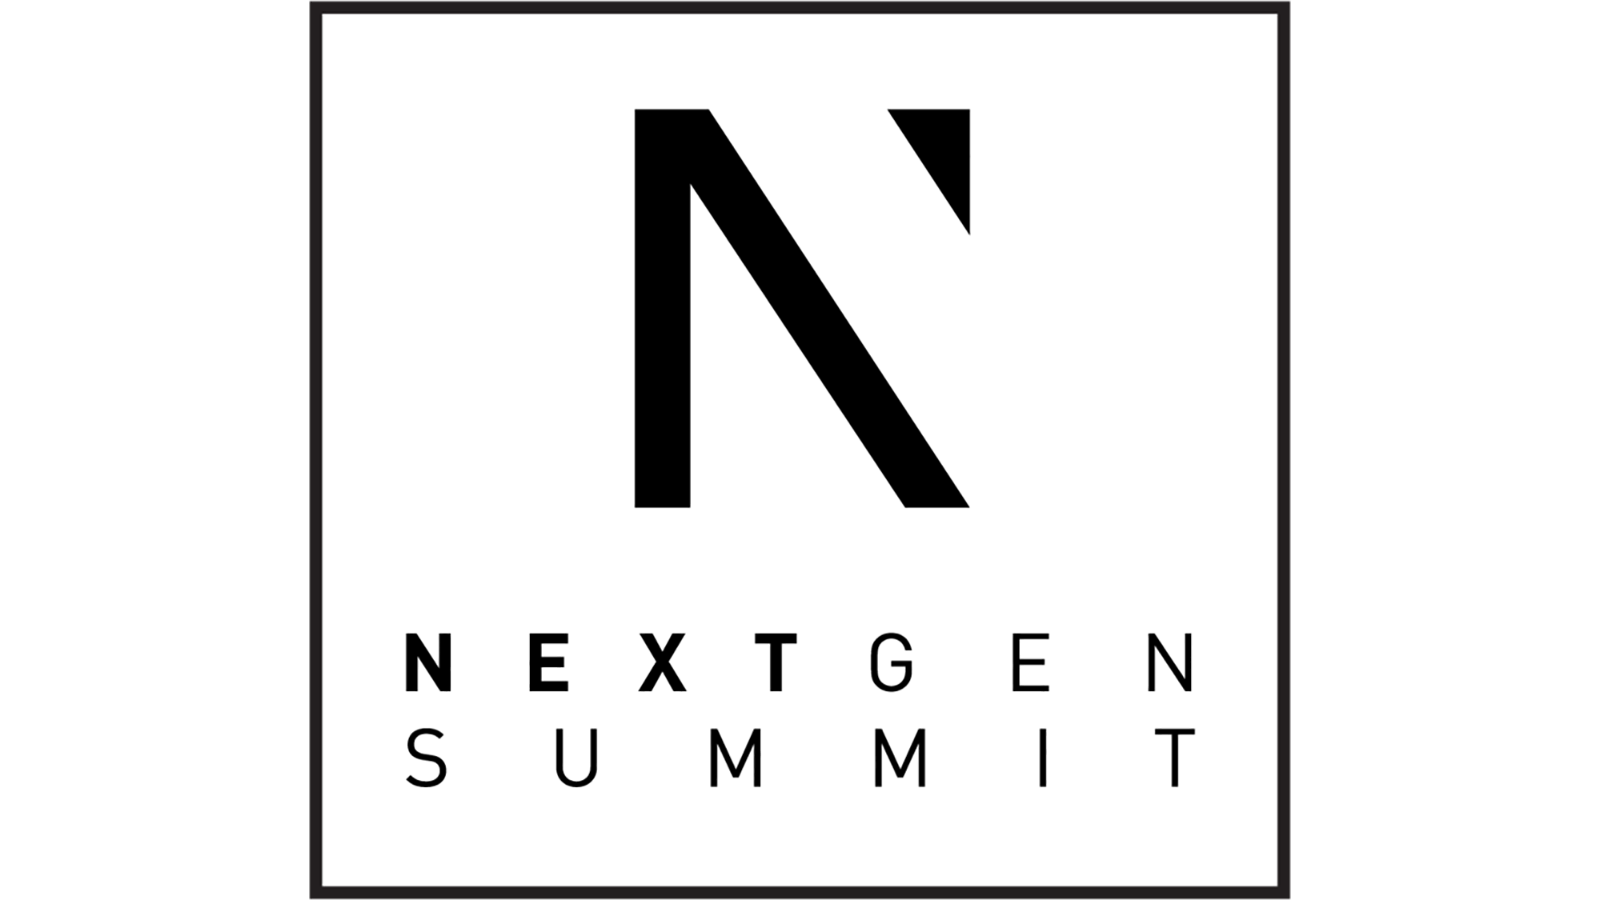 Next Gen Summit